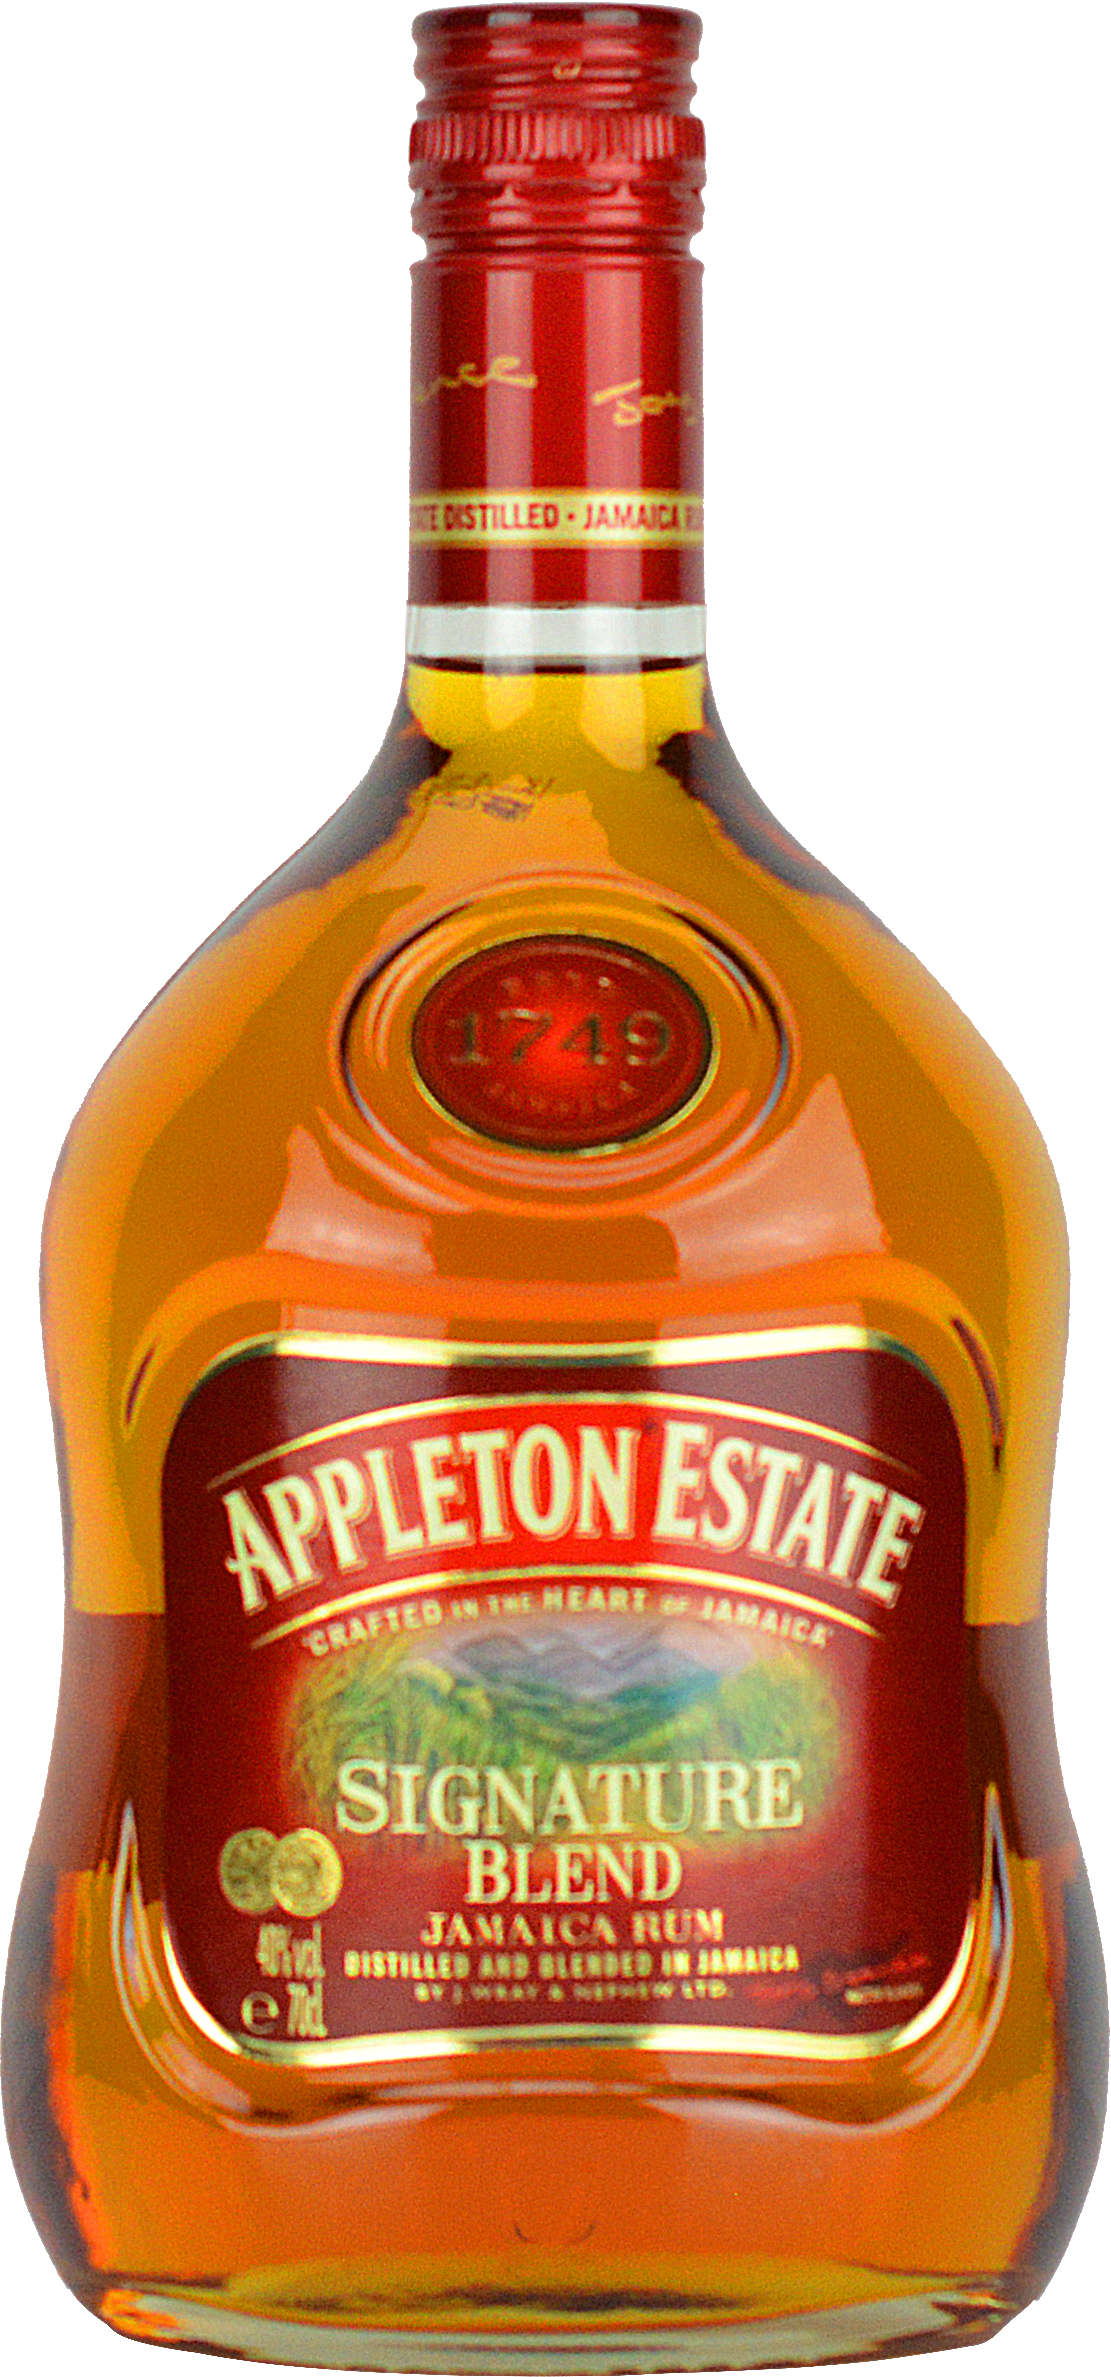 Engraved text on a bottle of Personalised Appleton Estate Signature Blend Rum 70cl